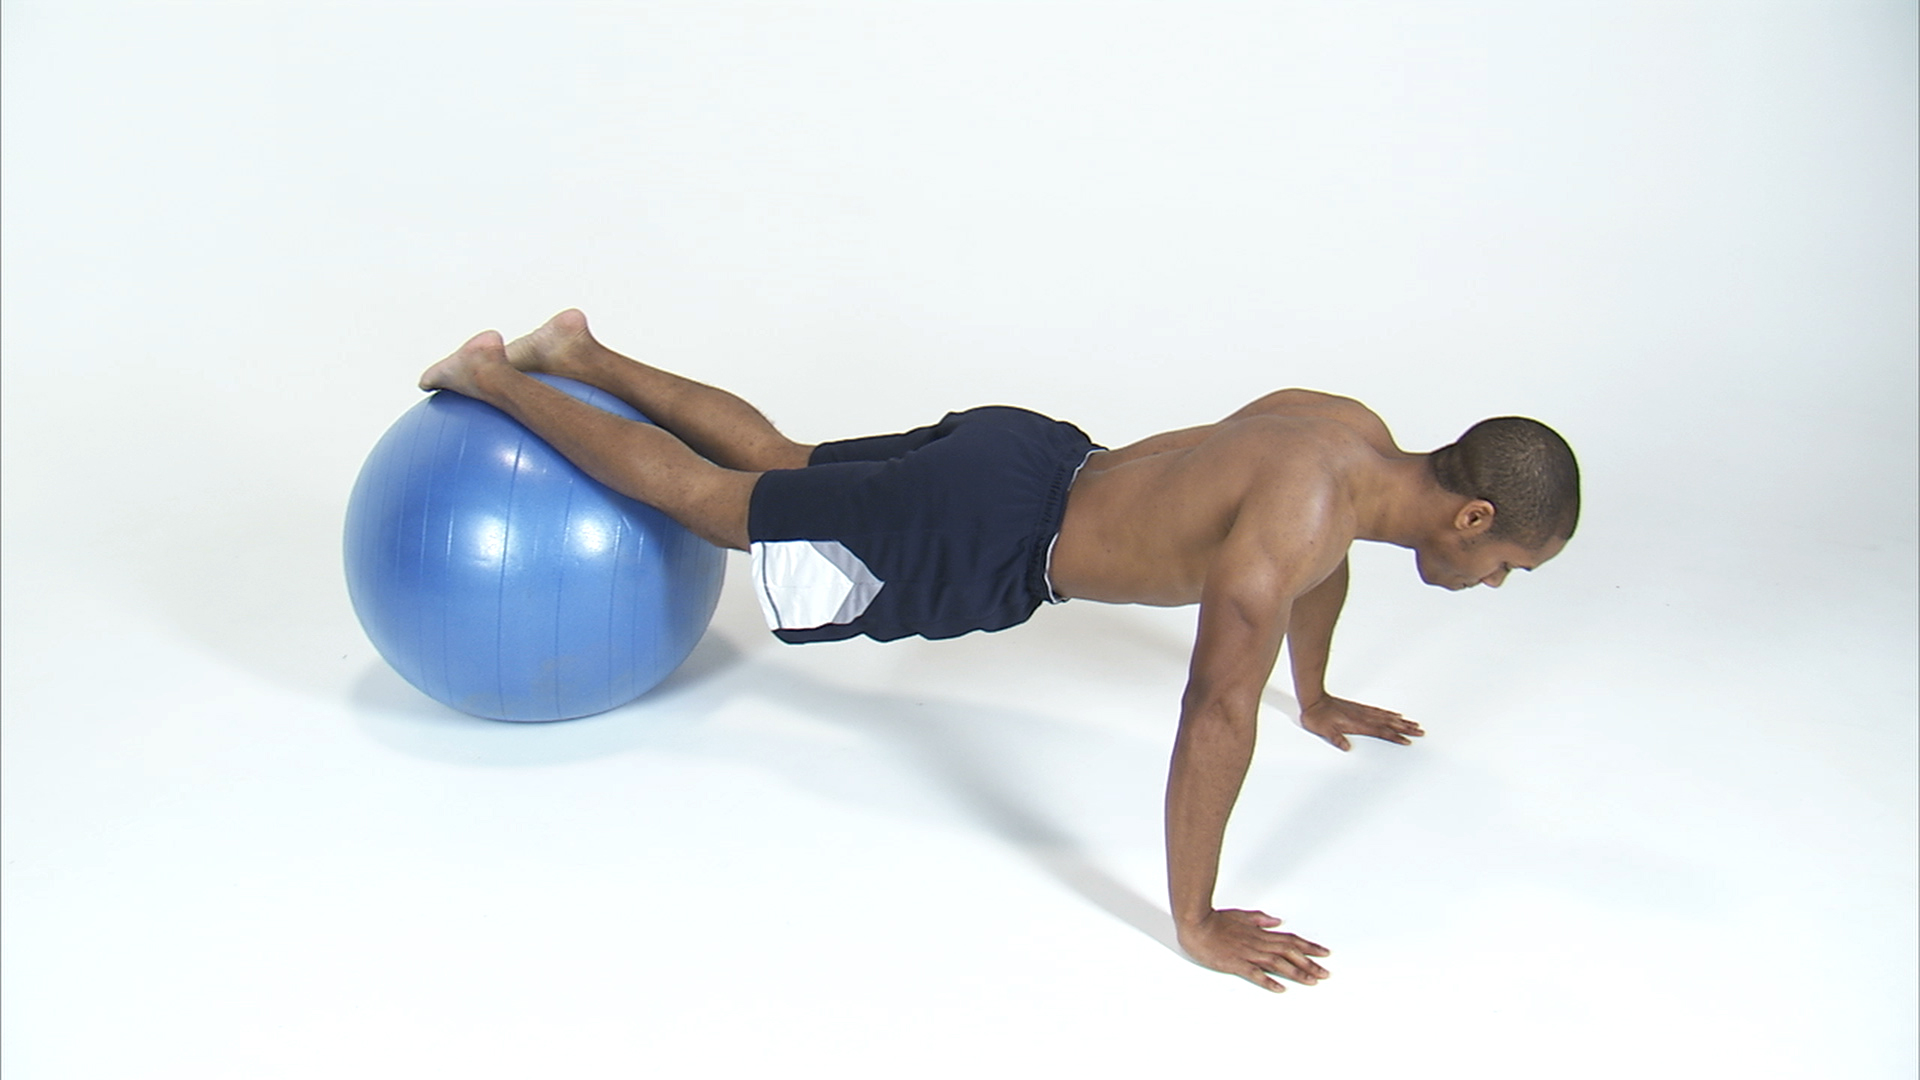 black man does push ups with exercise ball unlimited free stock photos royalty free images. Black Bedroom Furniture Sets. Home Design Ideas